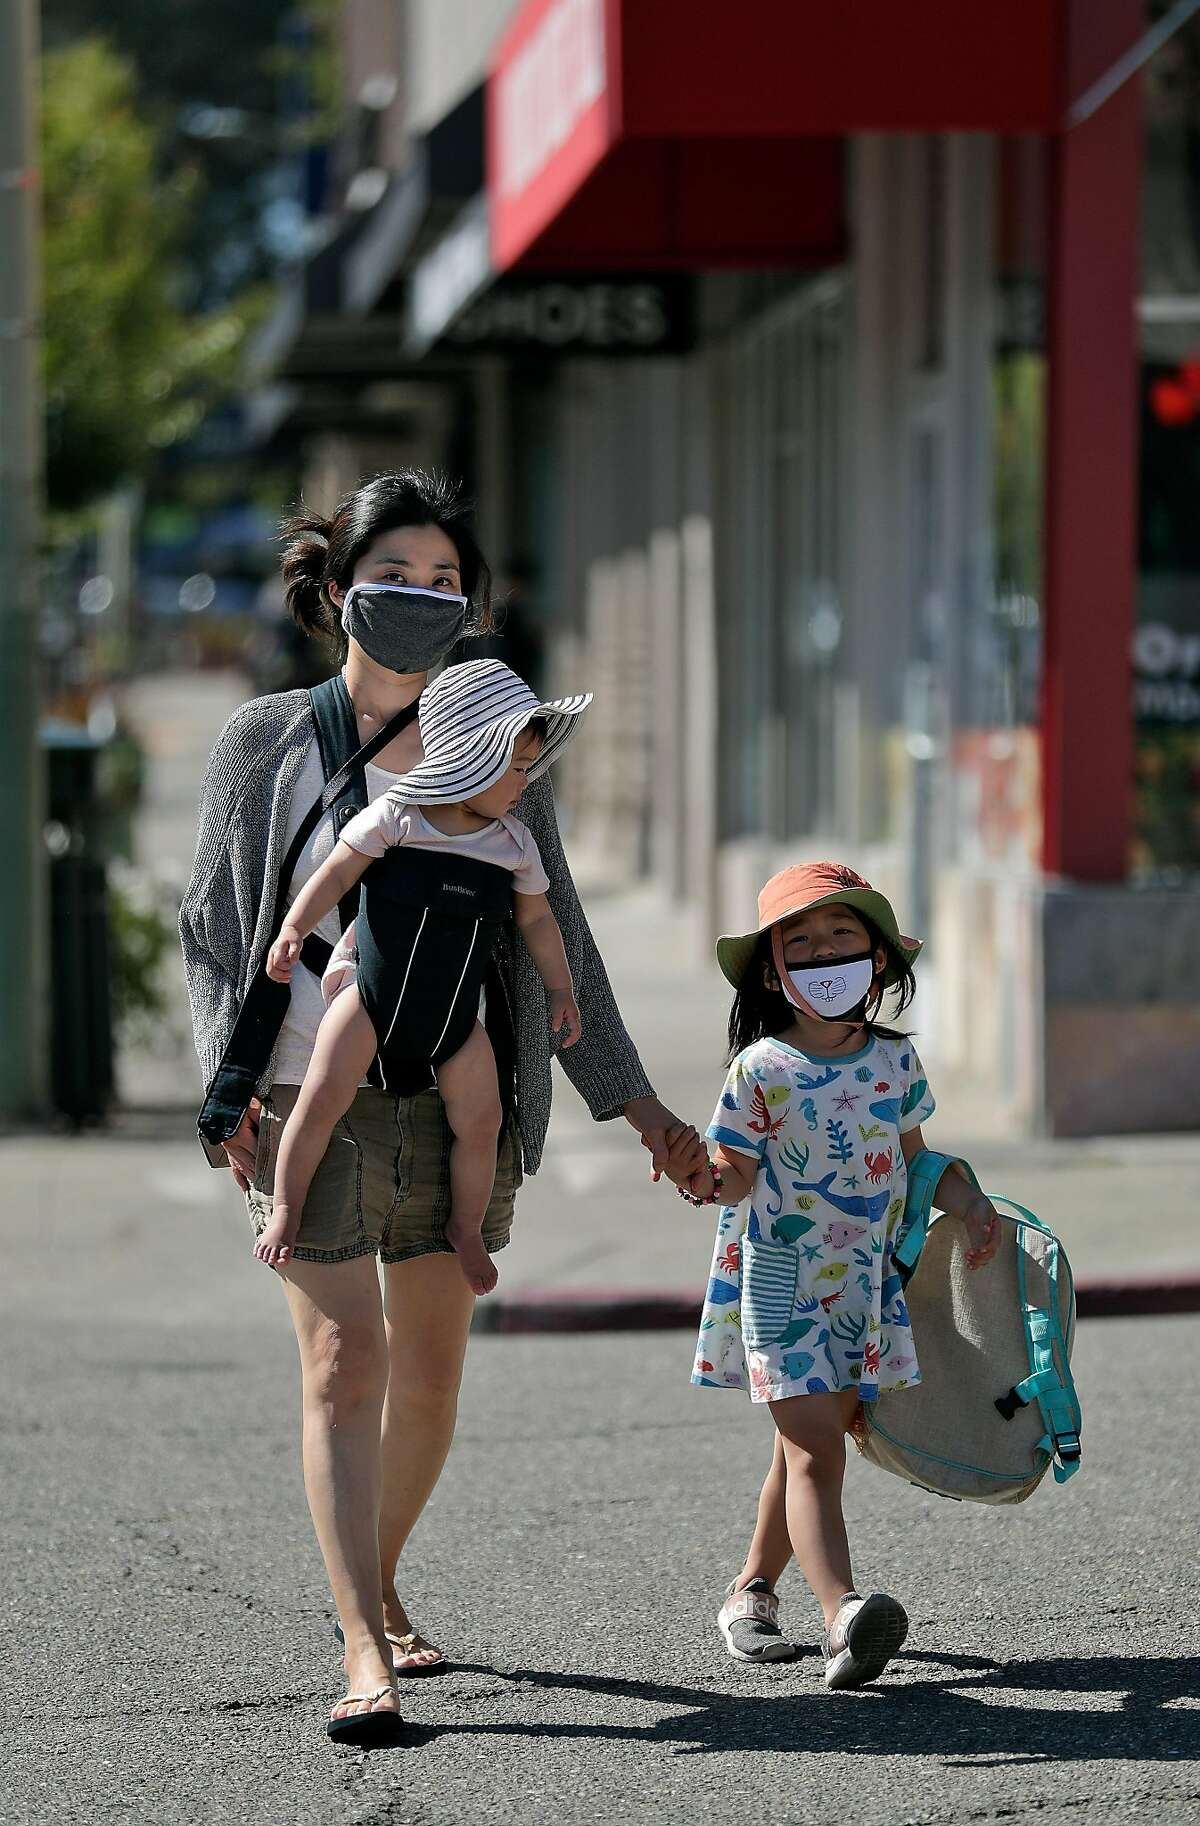 Dawn Sung walks with her daughters Elena, in carrier, and Astrid Chen wearing a mask in Monclair Village in Oakland, Calif., on Tuesday, June 30, 2020. As more positive test results show a spike in the coronavirus infections, people wanting to get outside are wearing masks to prevent the spread of the disease.